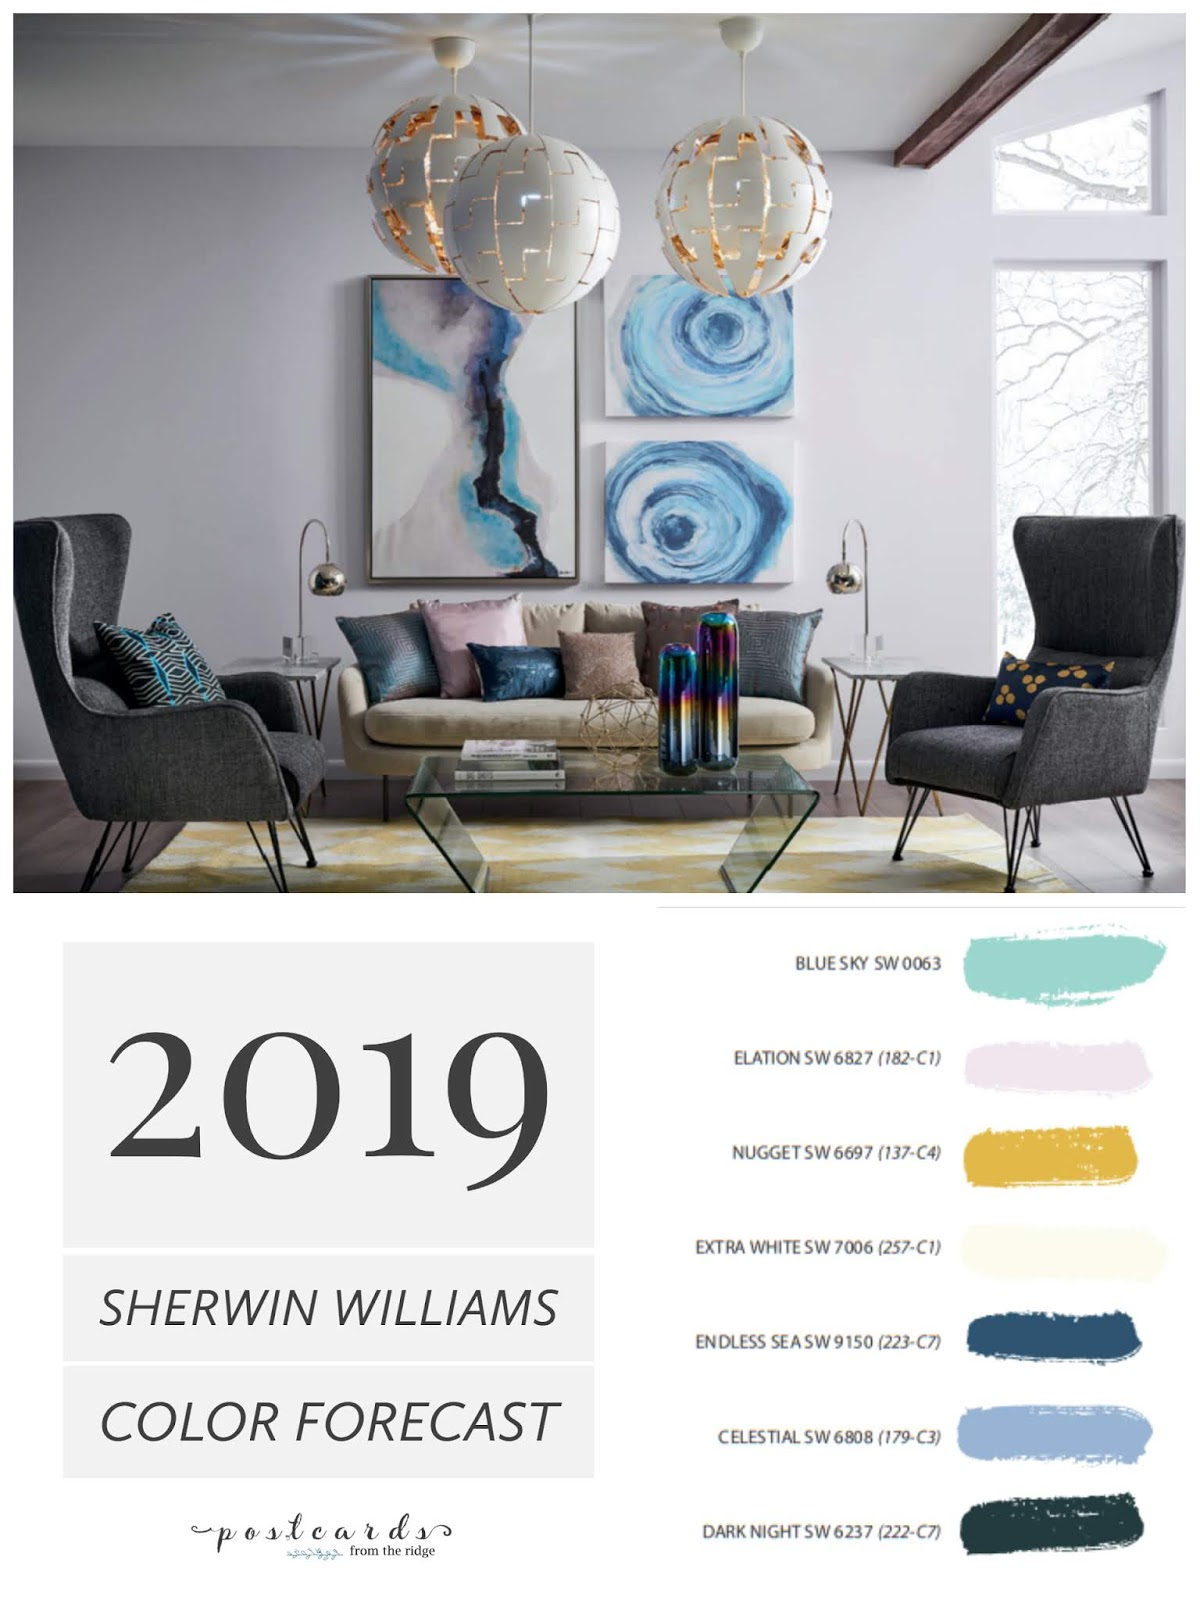 Living Room Paint Colors 2019 White For Color Forecast From Sherwin Williams Postcards The With Gray Painted Walls